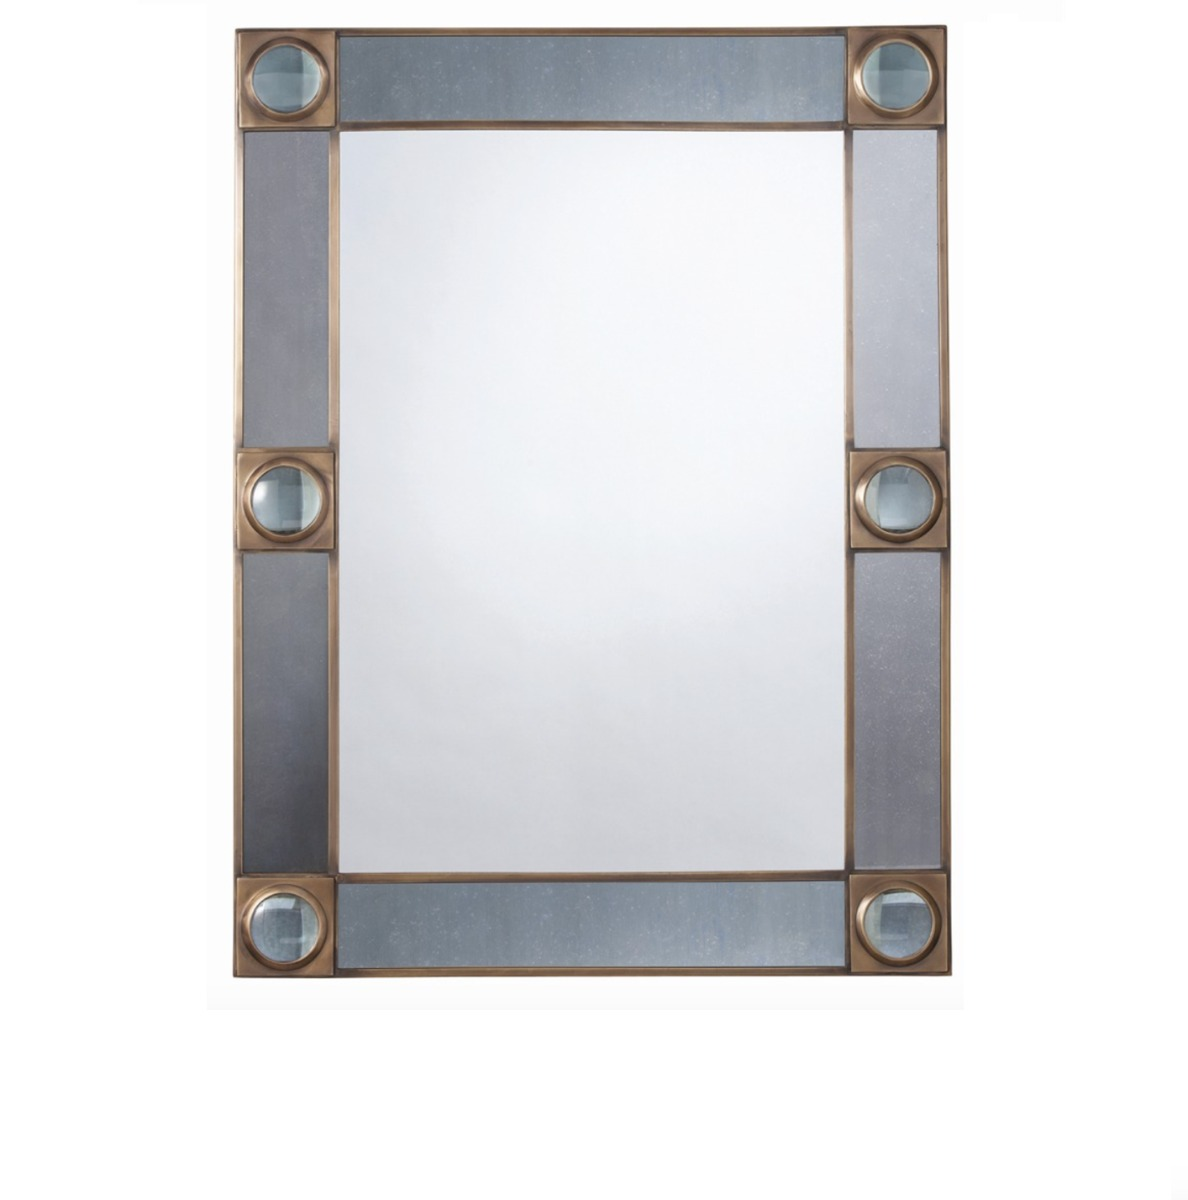 Designer Home luxury mirror with an industrial style with glass detailing at Luxuria London